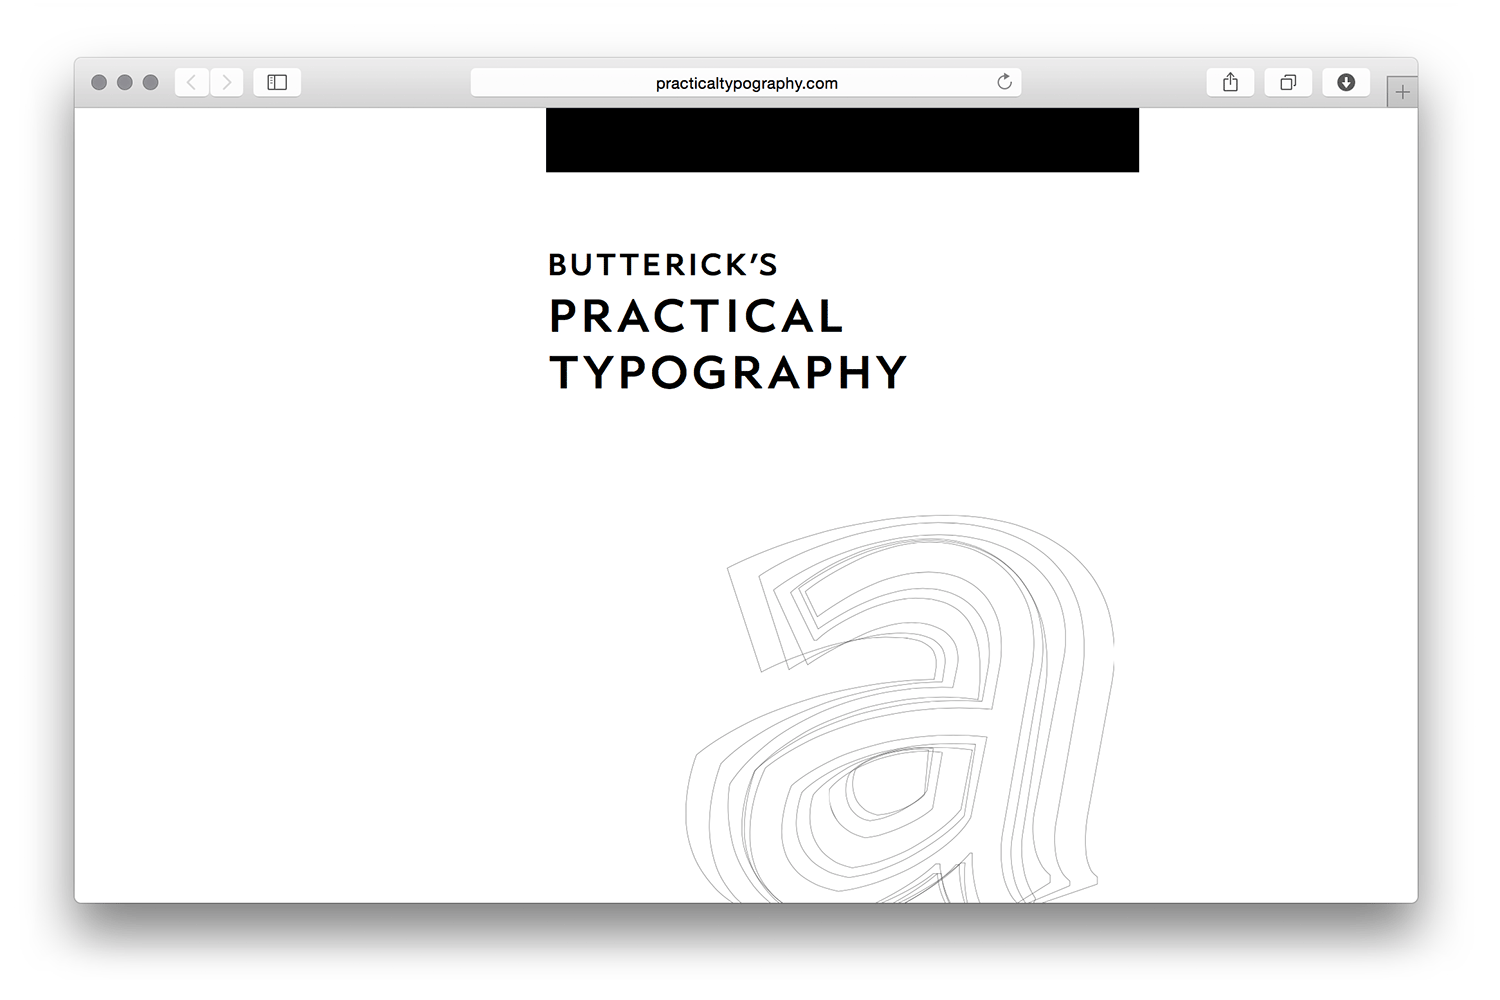 butterick-1.png